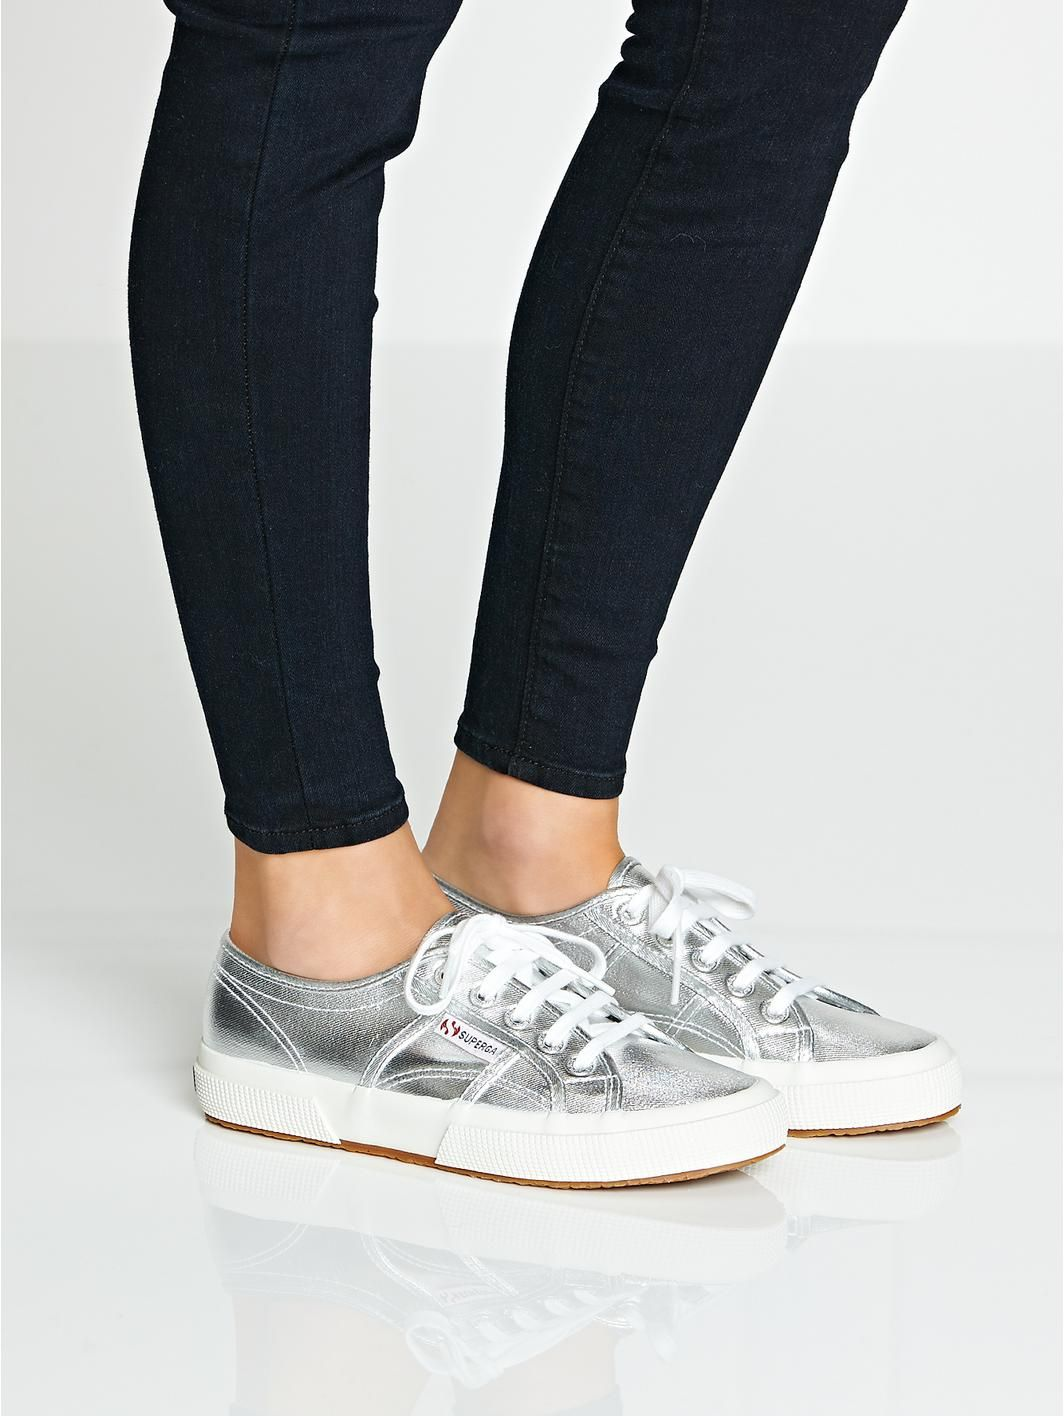 3a20730390296 Exclusive | www.very.co.uk | Style to love | Superga, Plimsolls ...